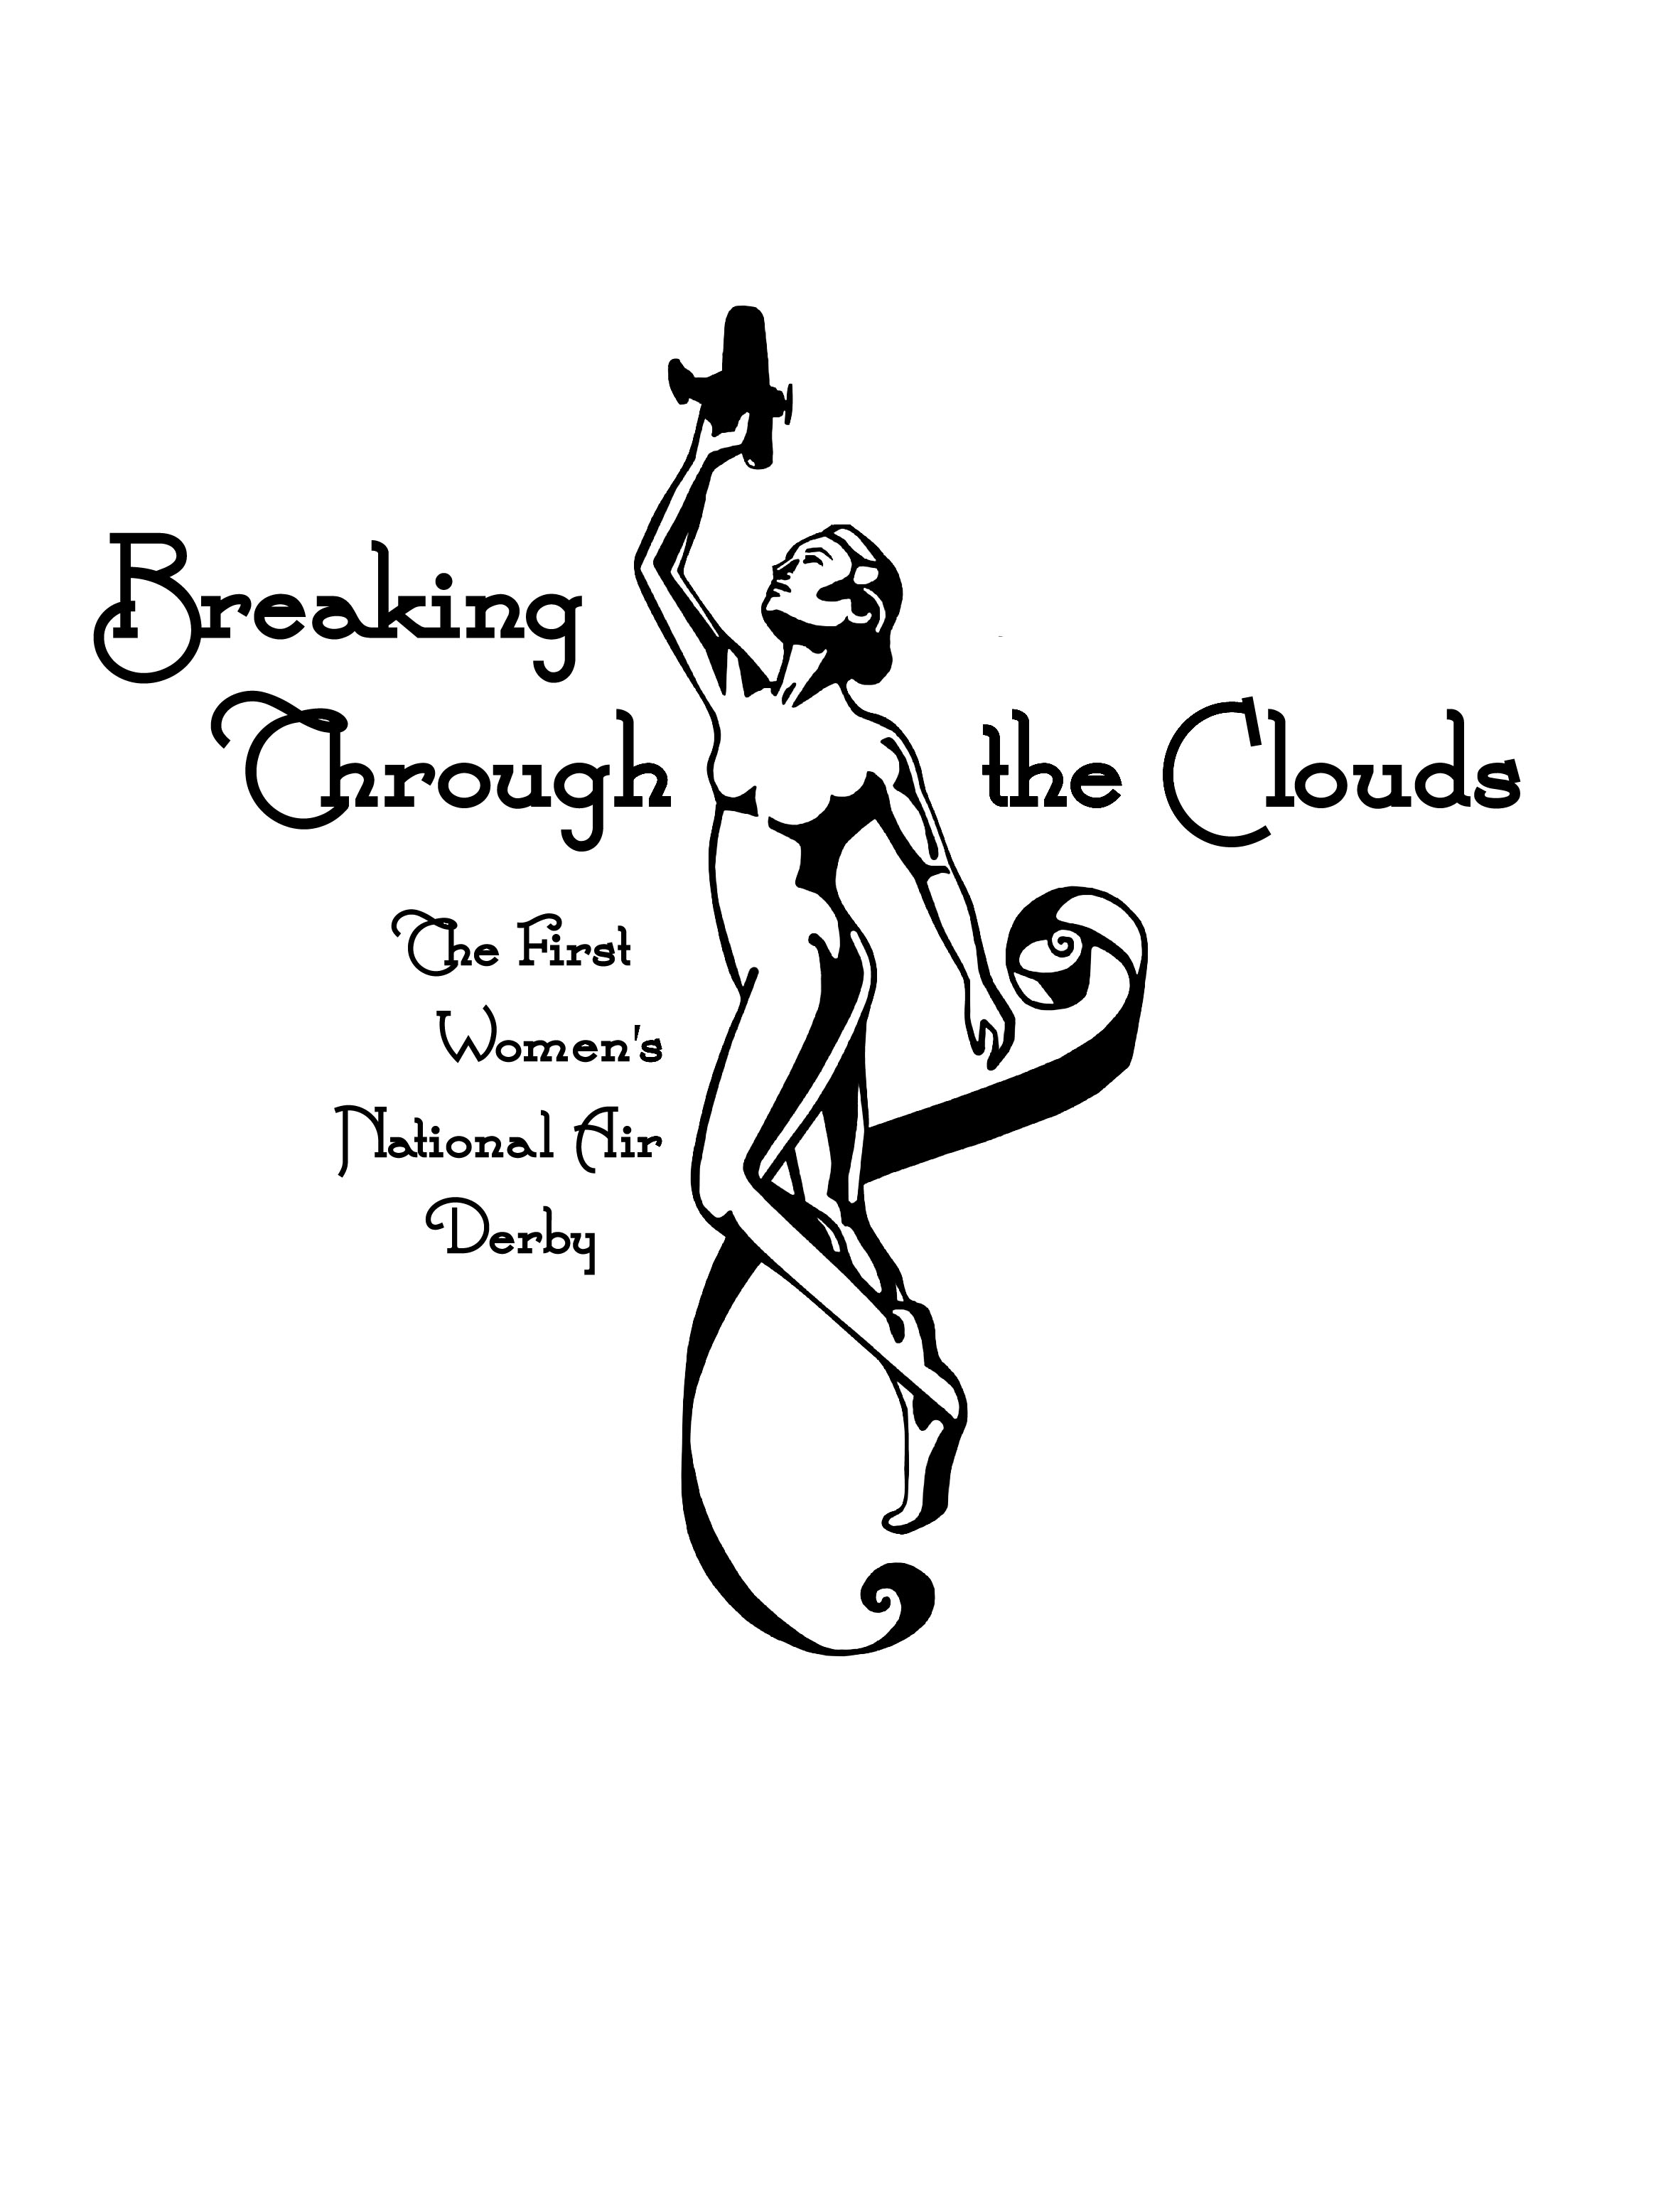 breaking through the clouds logo tag copy.jpg